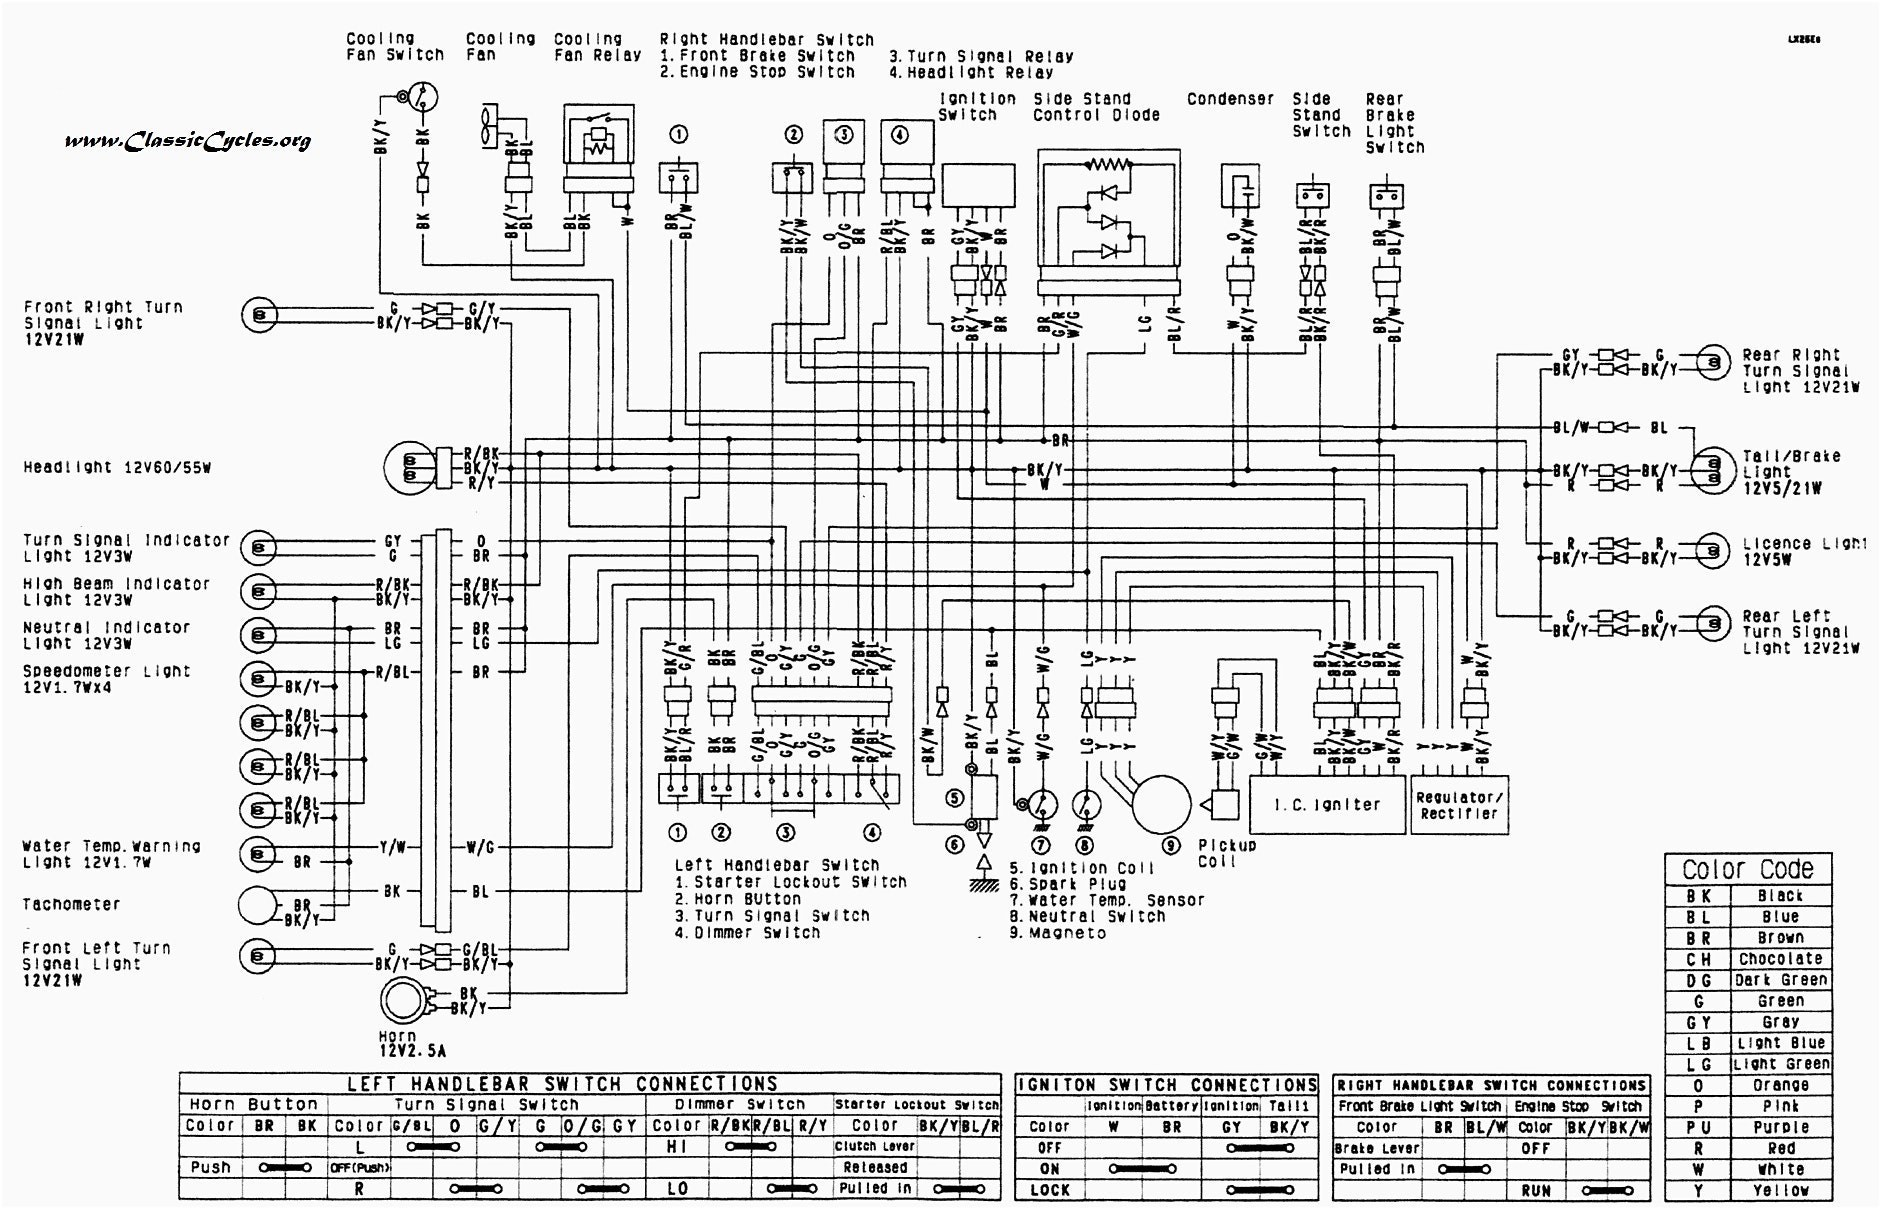 [DIAGRAM] 2007 Baja 250 Atv Wiring Diagram FULL Version HD